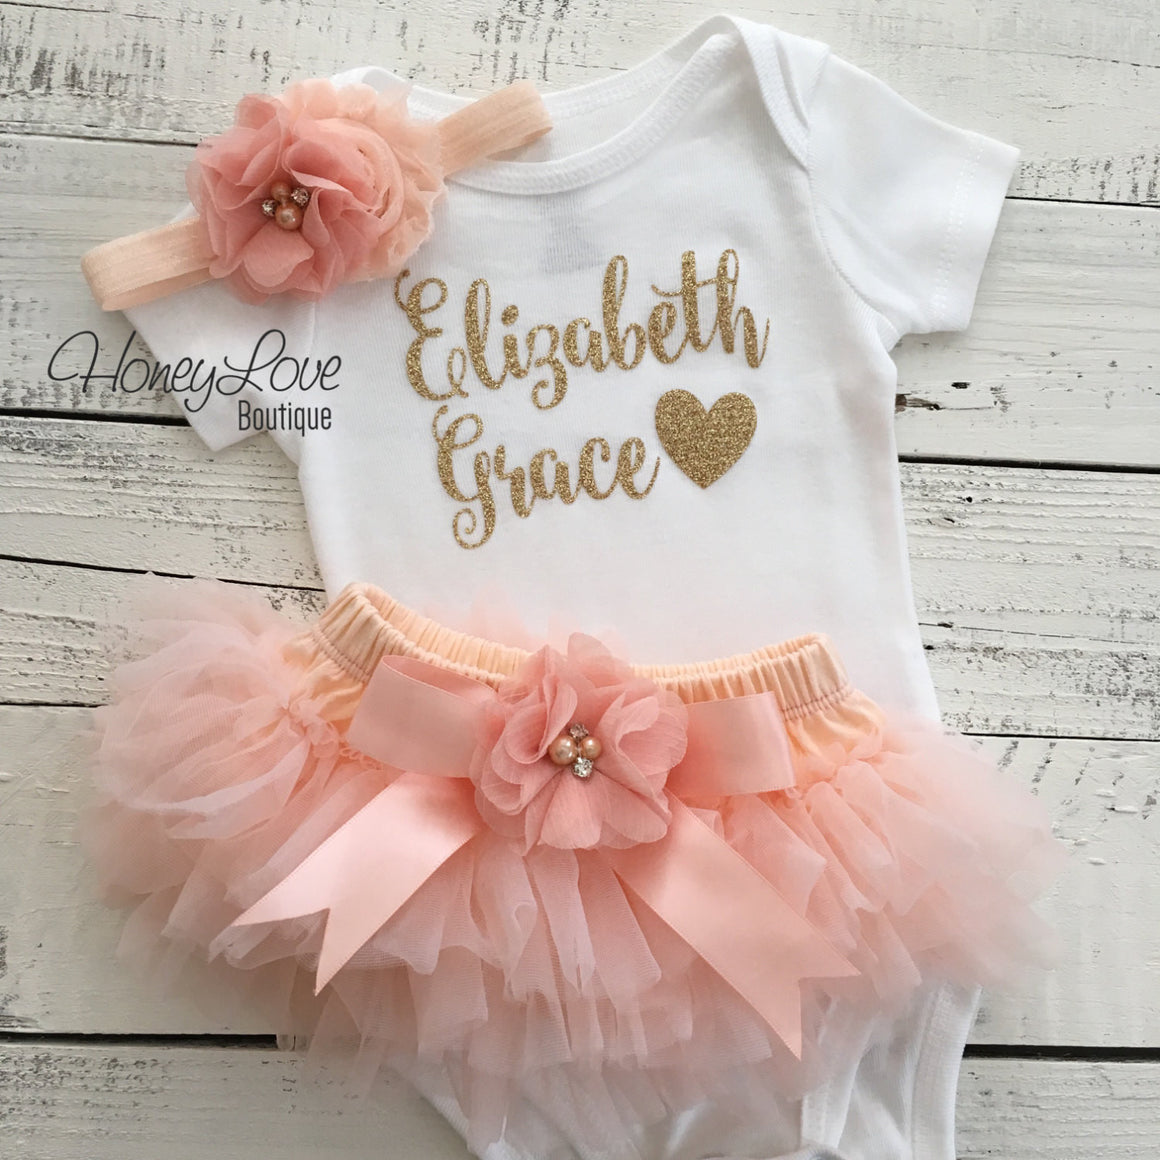 PERSONALIZED Name Outfit - Gold Glitter and Peach - embellished tutu skirt bloomers - HoneyLoveBoutique